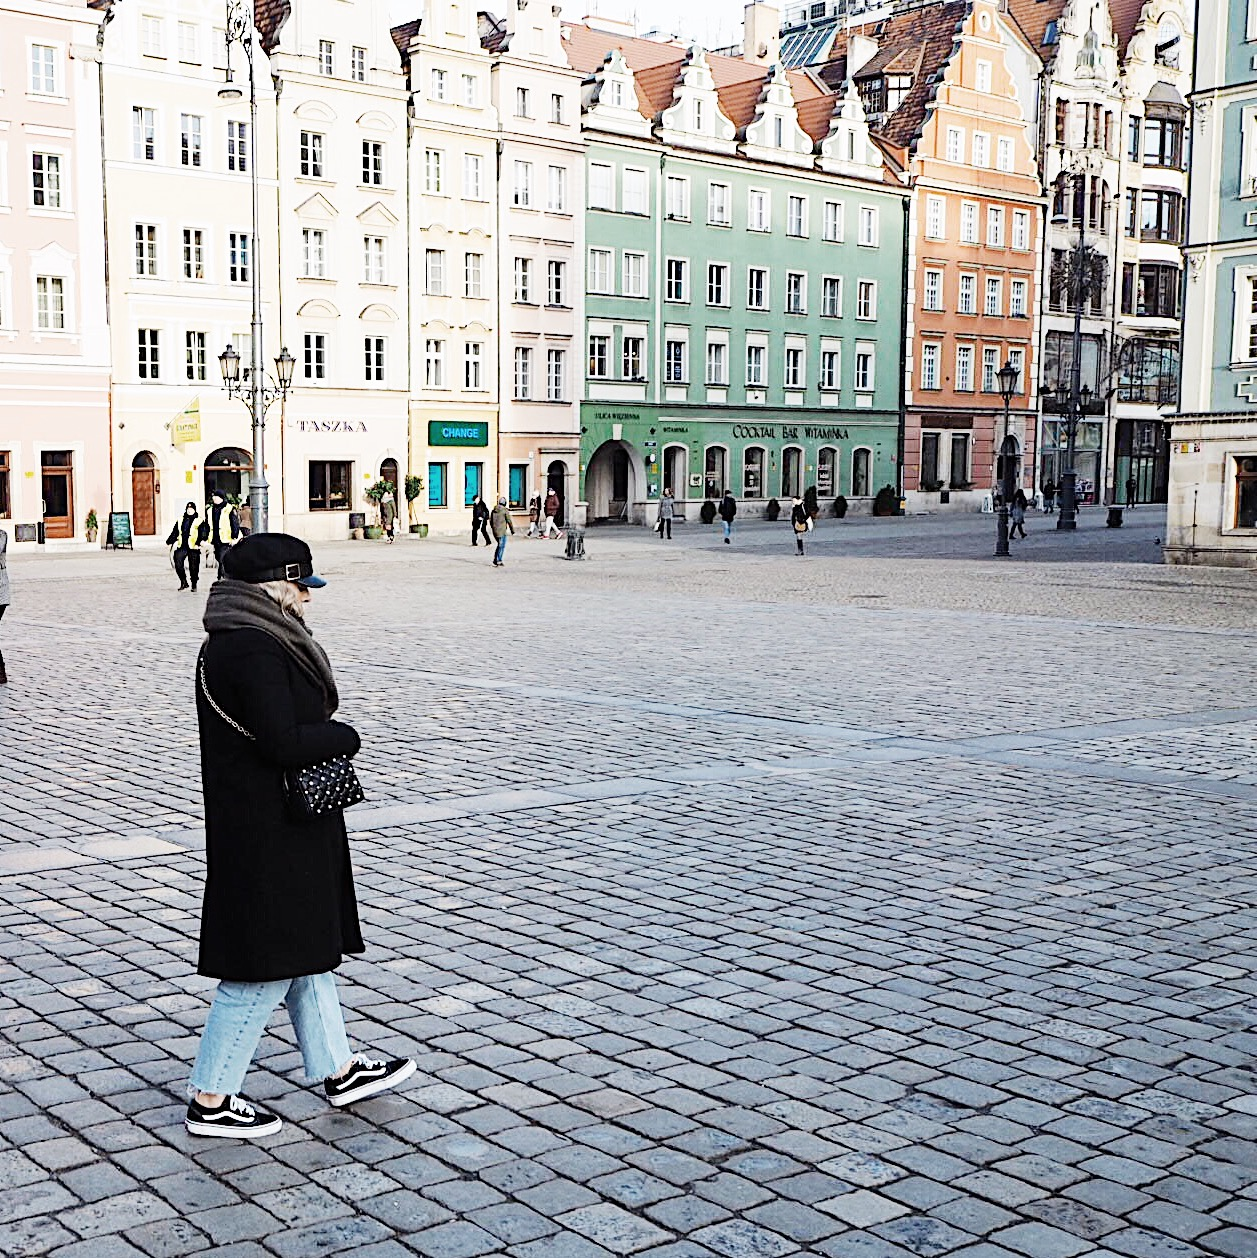 Wroclaw – Our Four Days In Poland